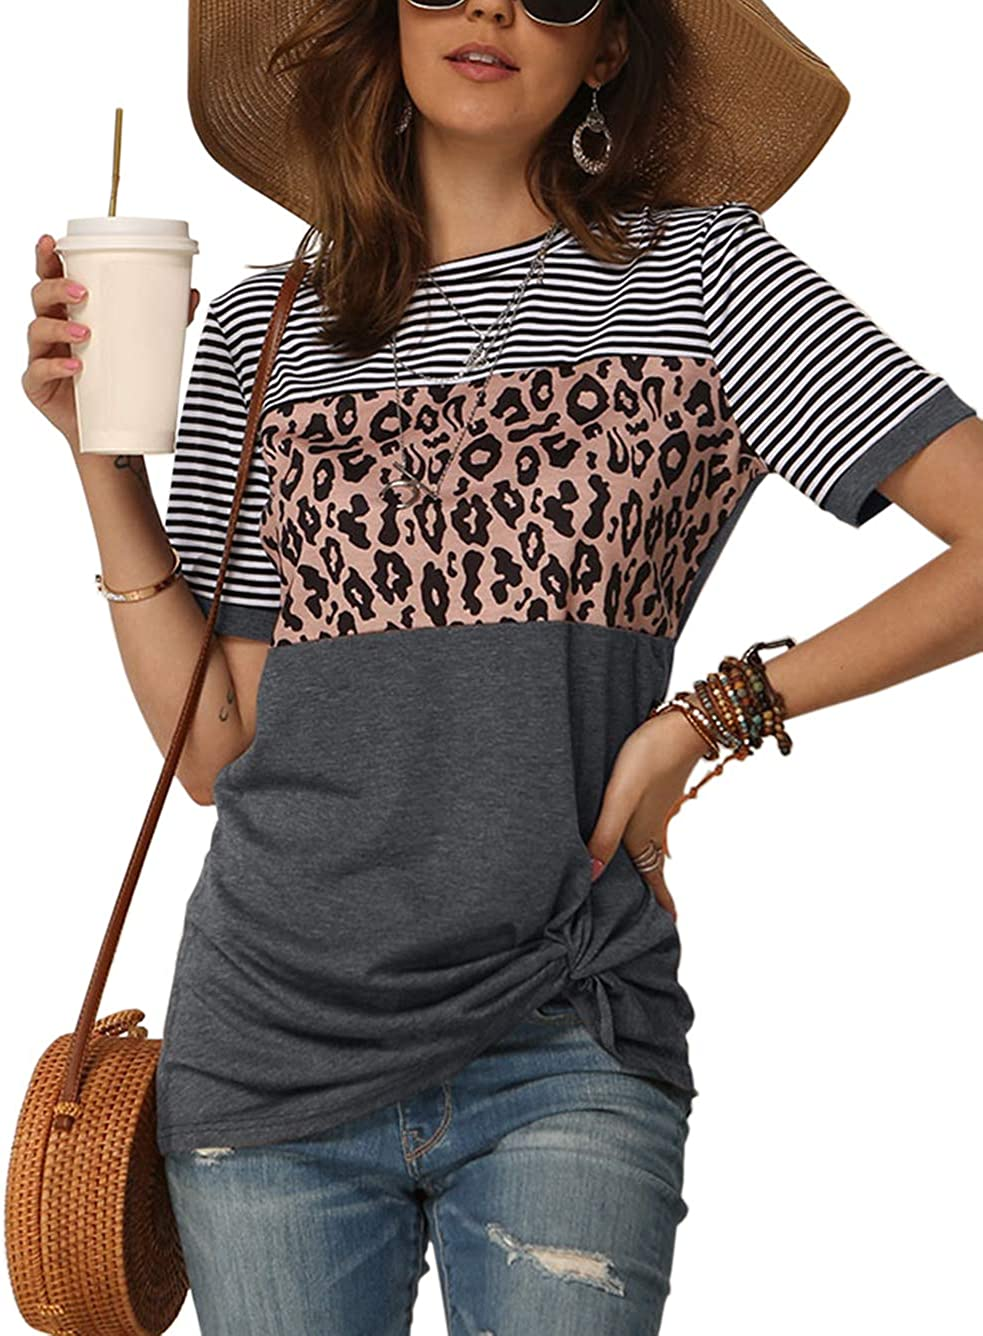 Bunanphy Womens Short/Long Sleeve Round Neck Leopard Color Block Side Twist Cute Blouse Tunic Top T Shirt